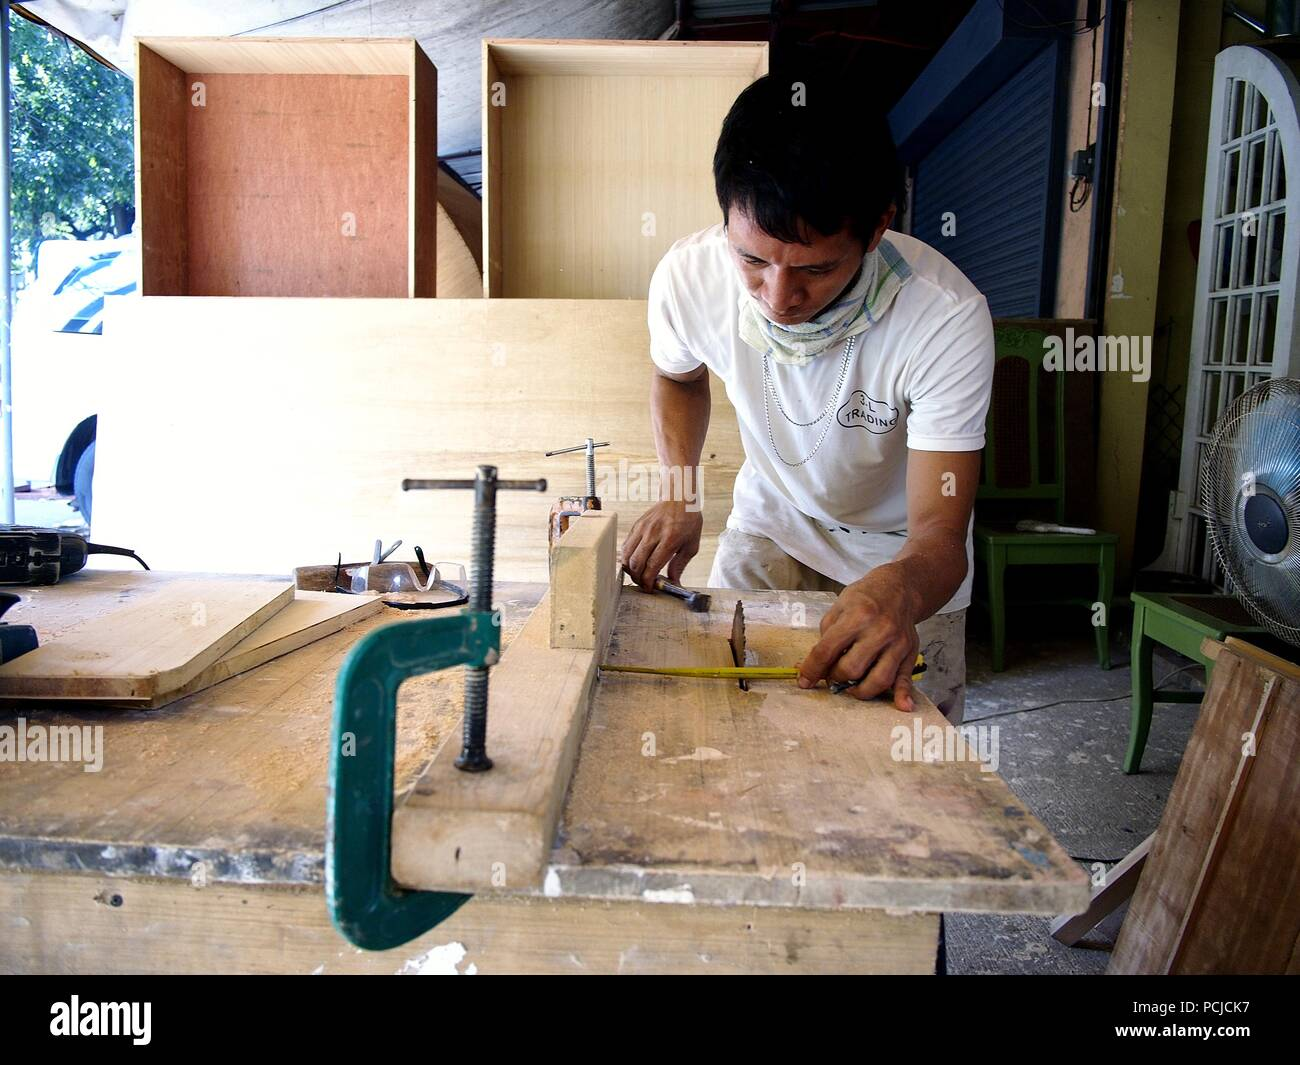 ANTIPOLO CITY, PHILIPPINES - JULY 31, 2018: A carpenter cuts wood using a table saw in his workshop. - Stock Image